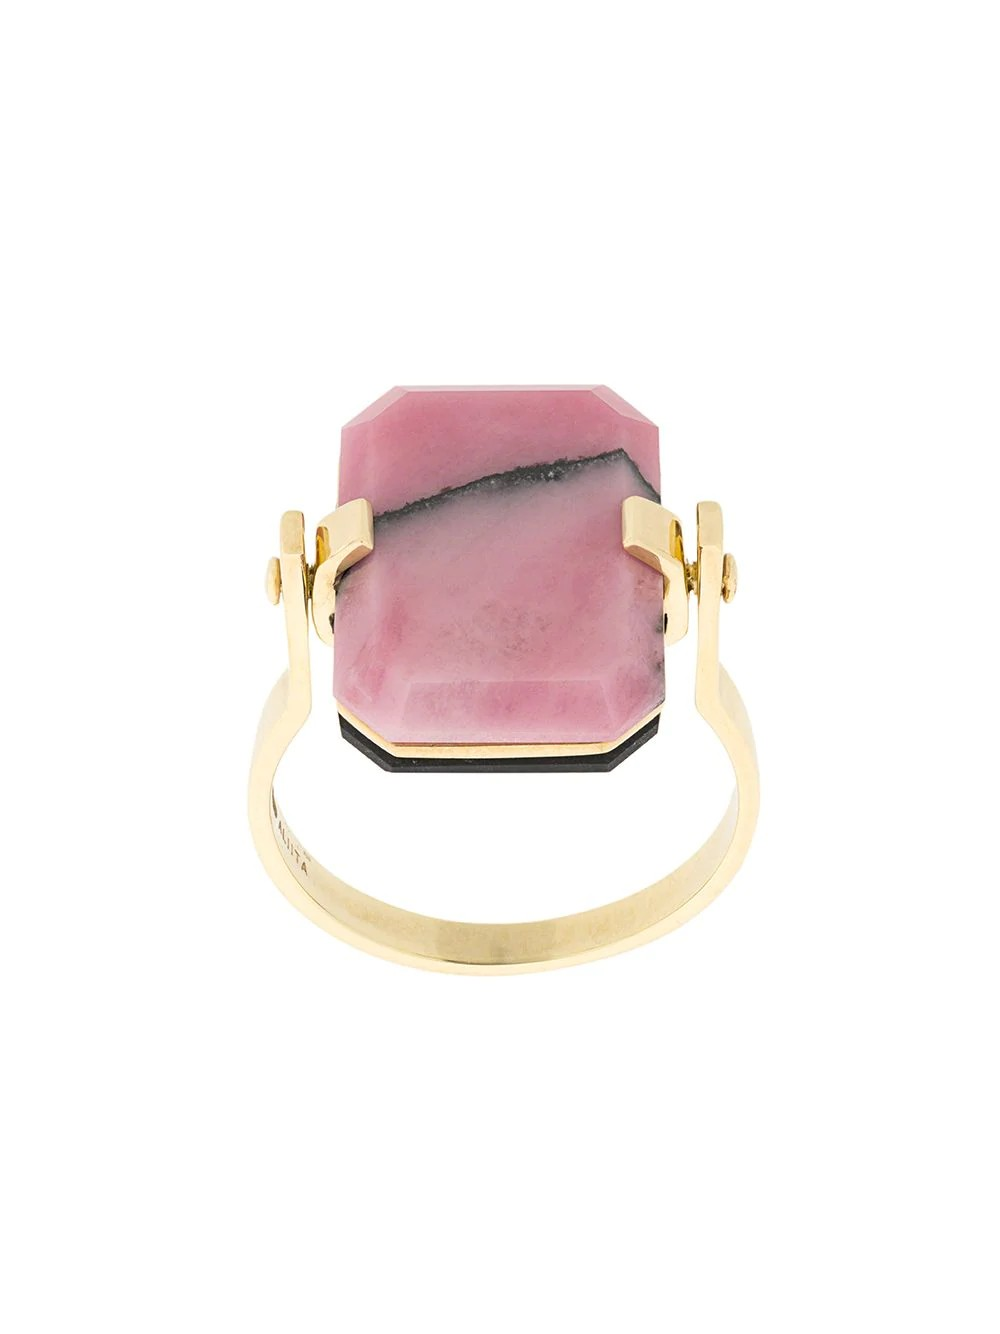 9kt yellow gold ring with black agate and pink rodonite octagonal cut